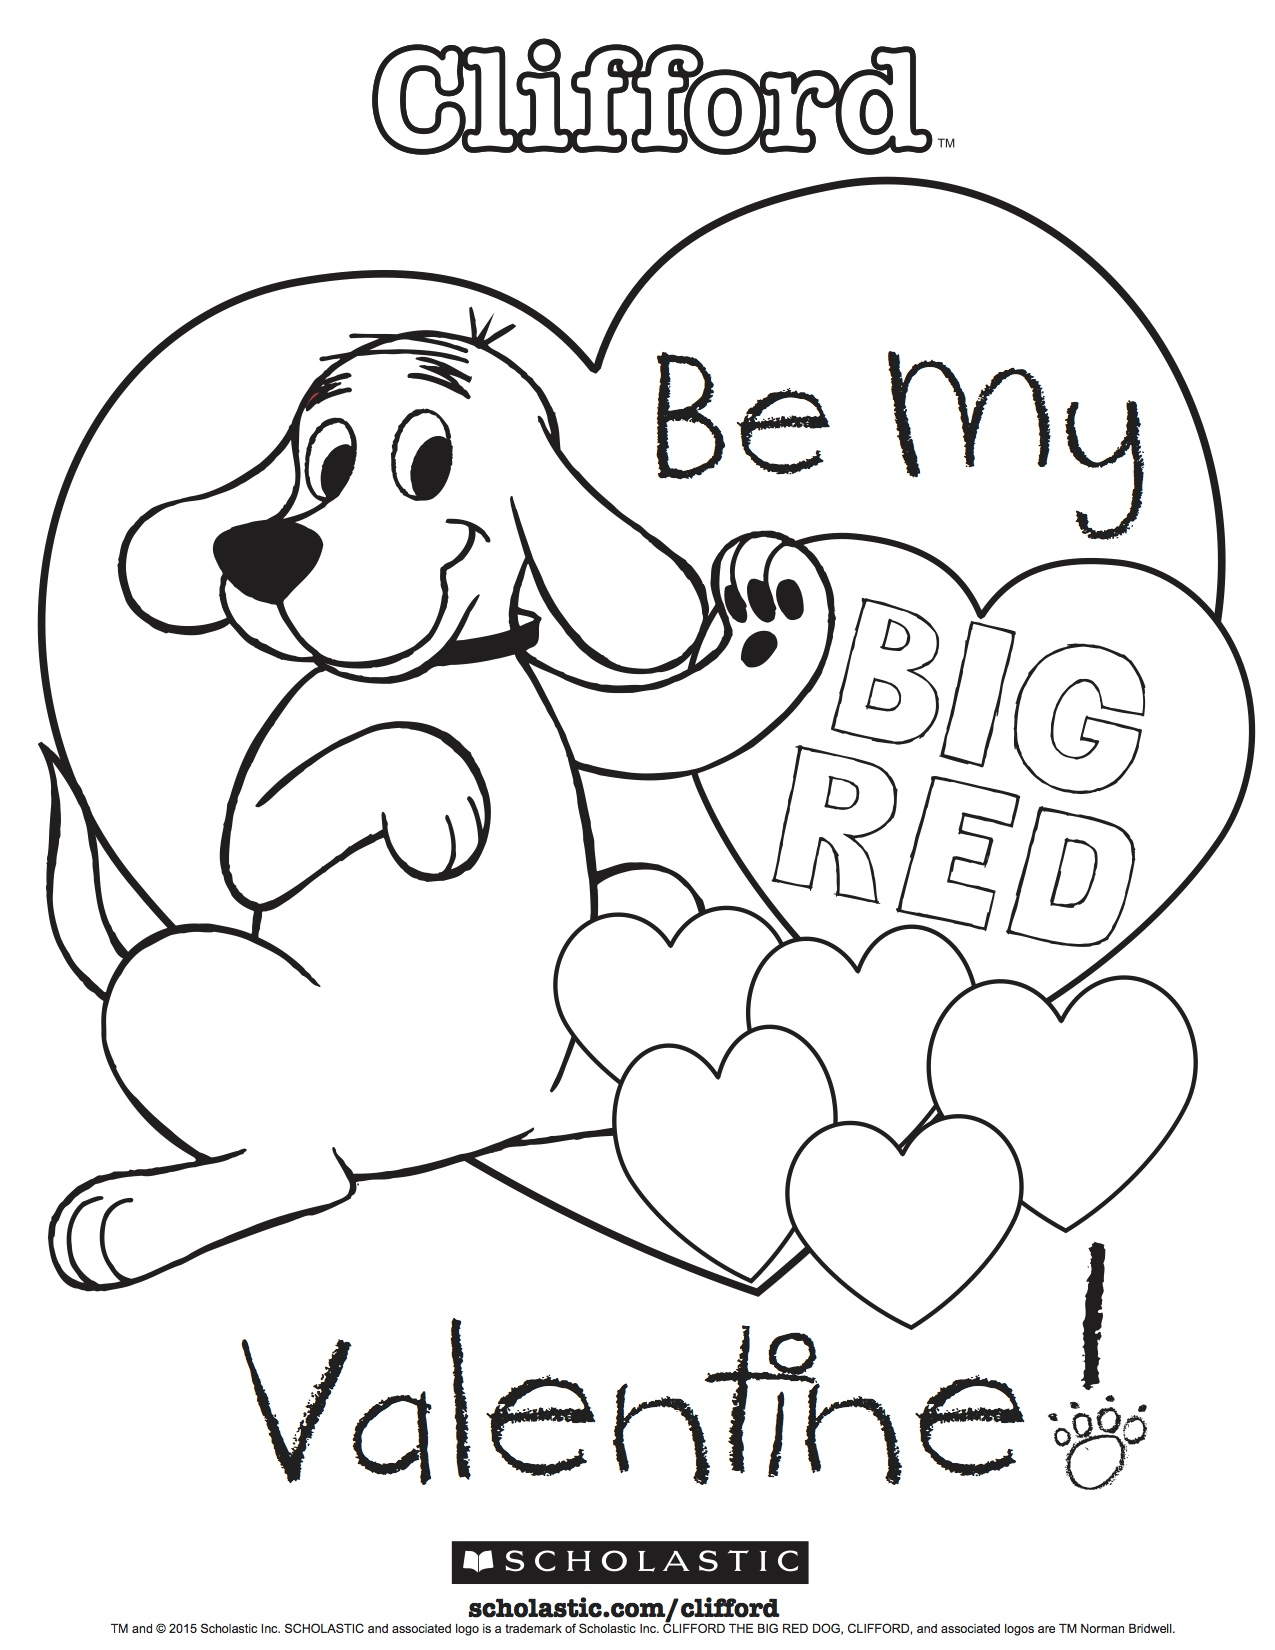 Clifford The Big Red Dog Coloring Pages At Getcolorings